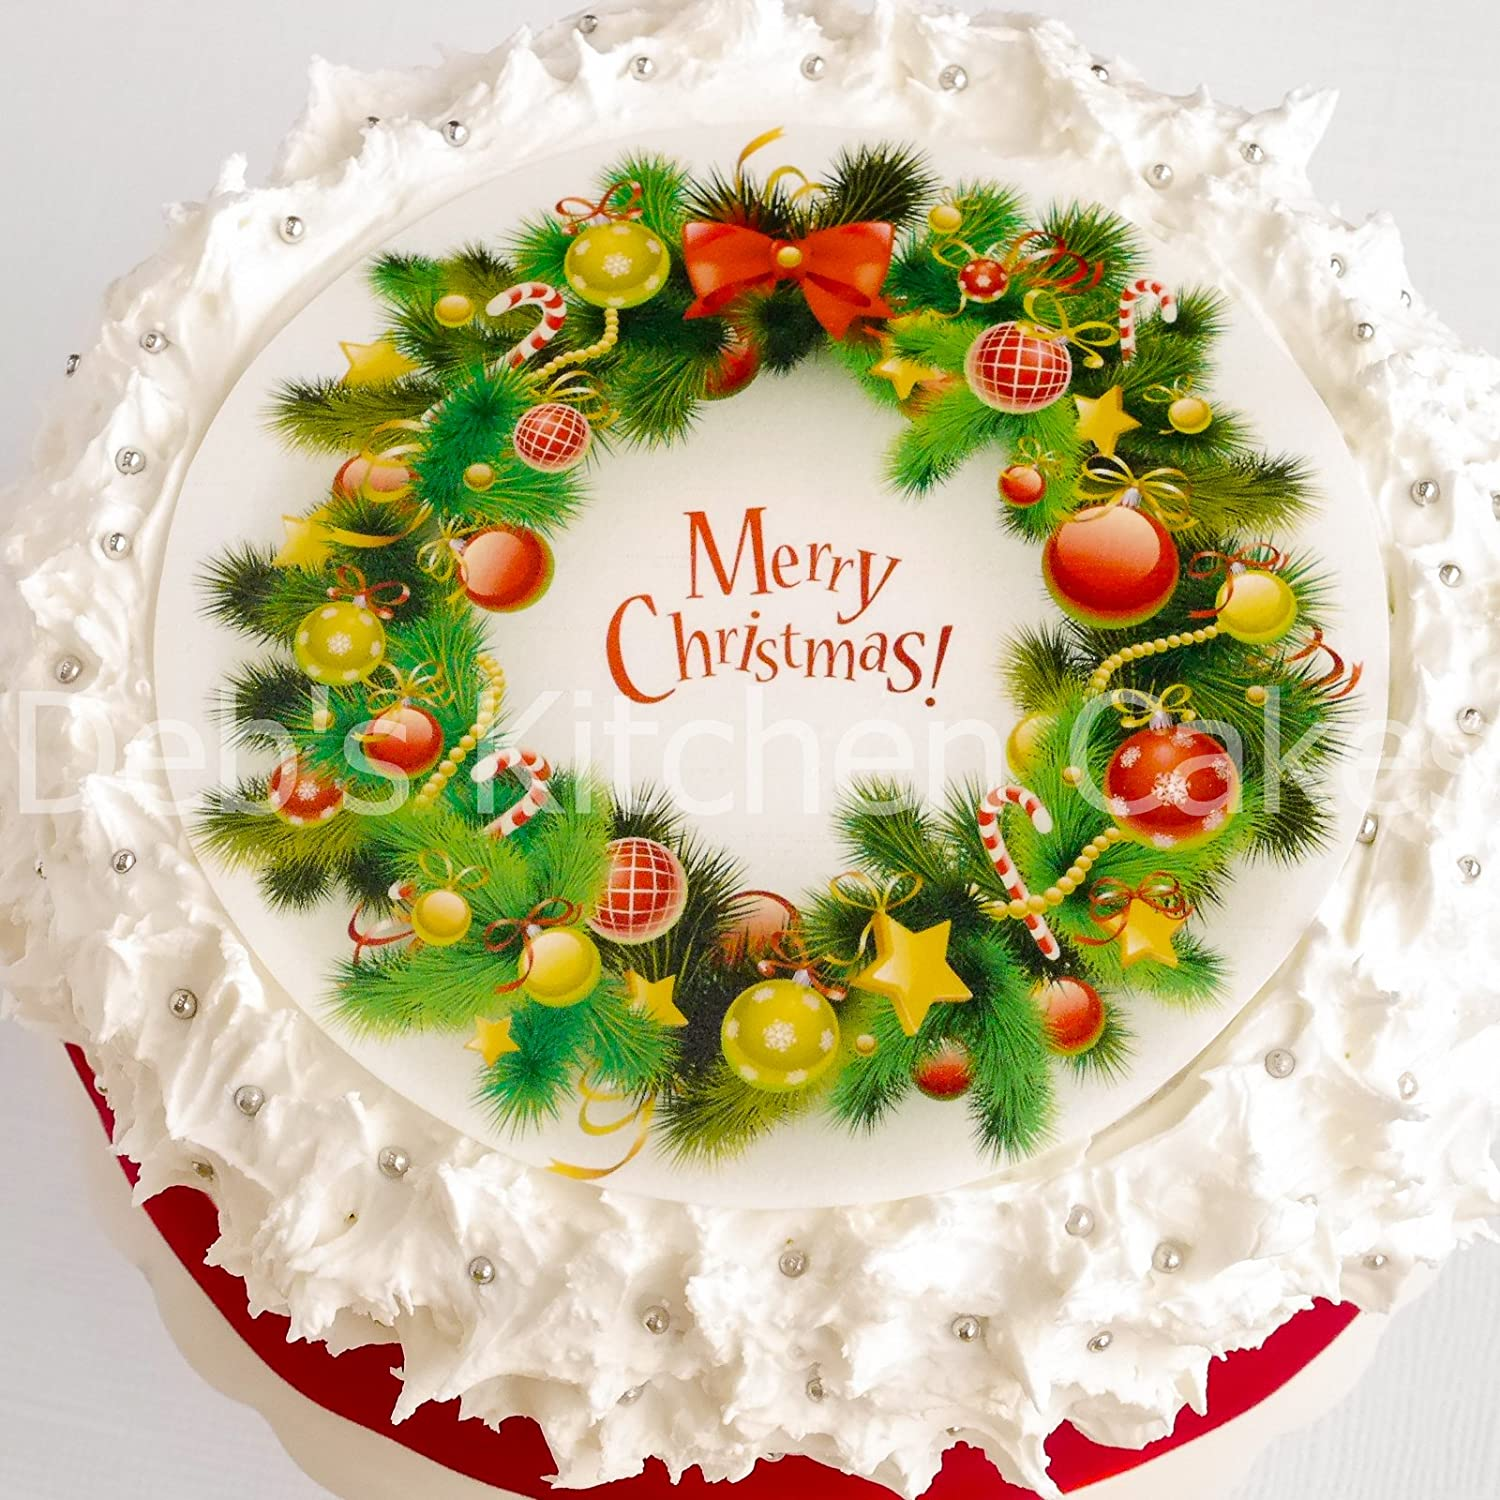 christmas cake topper merry christmas wreath cake decoration edible icing or wafer 75 - Christmas Cake Decorations